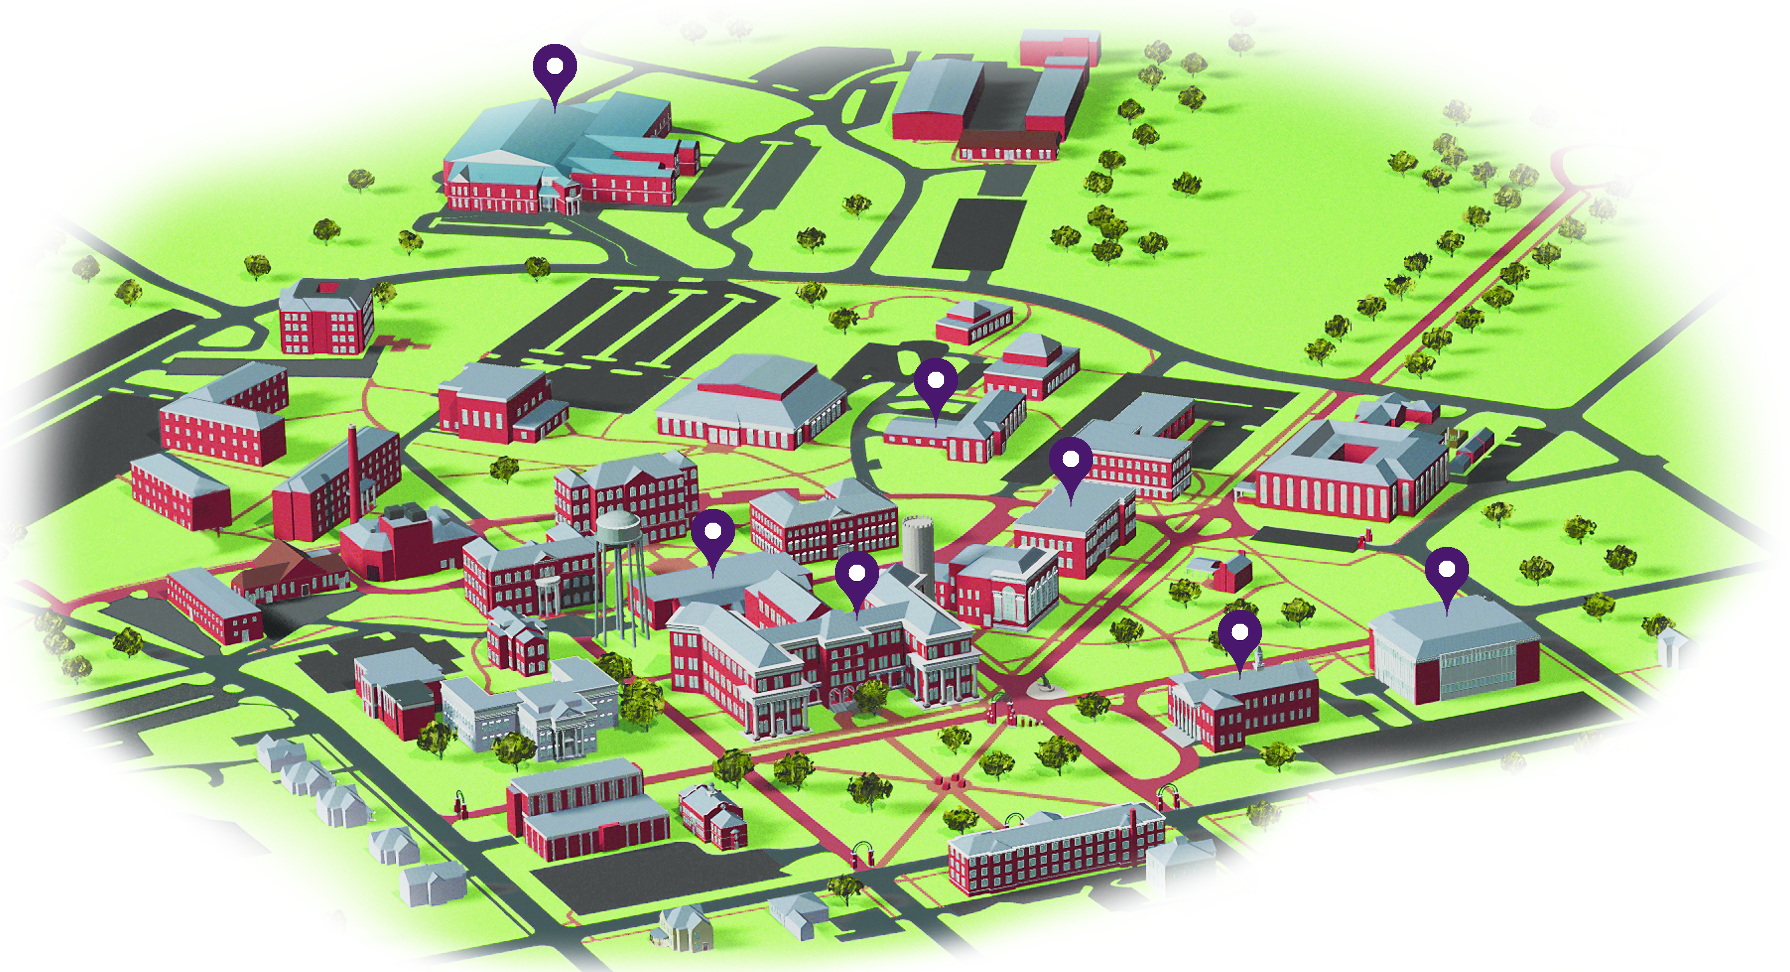 Whitworth University Campus Map.Whitworth University Campus Map